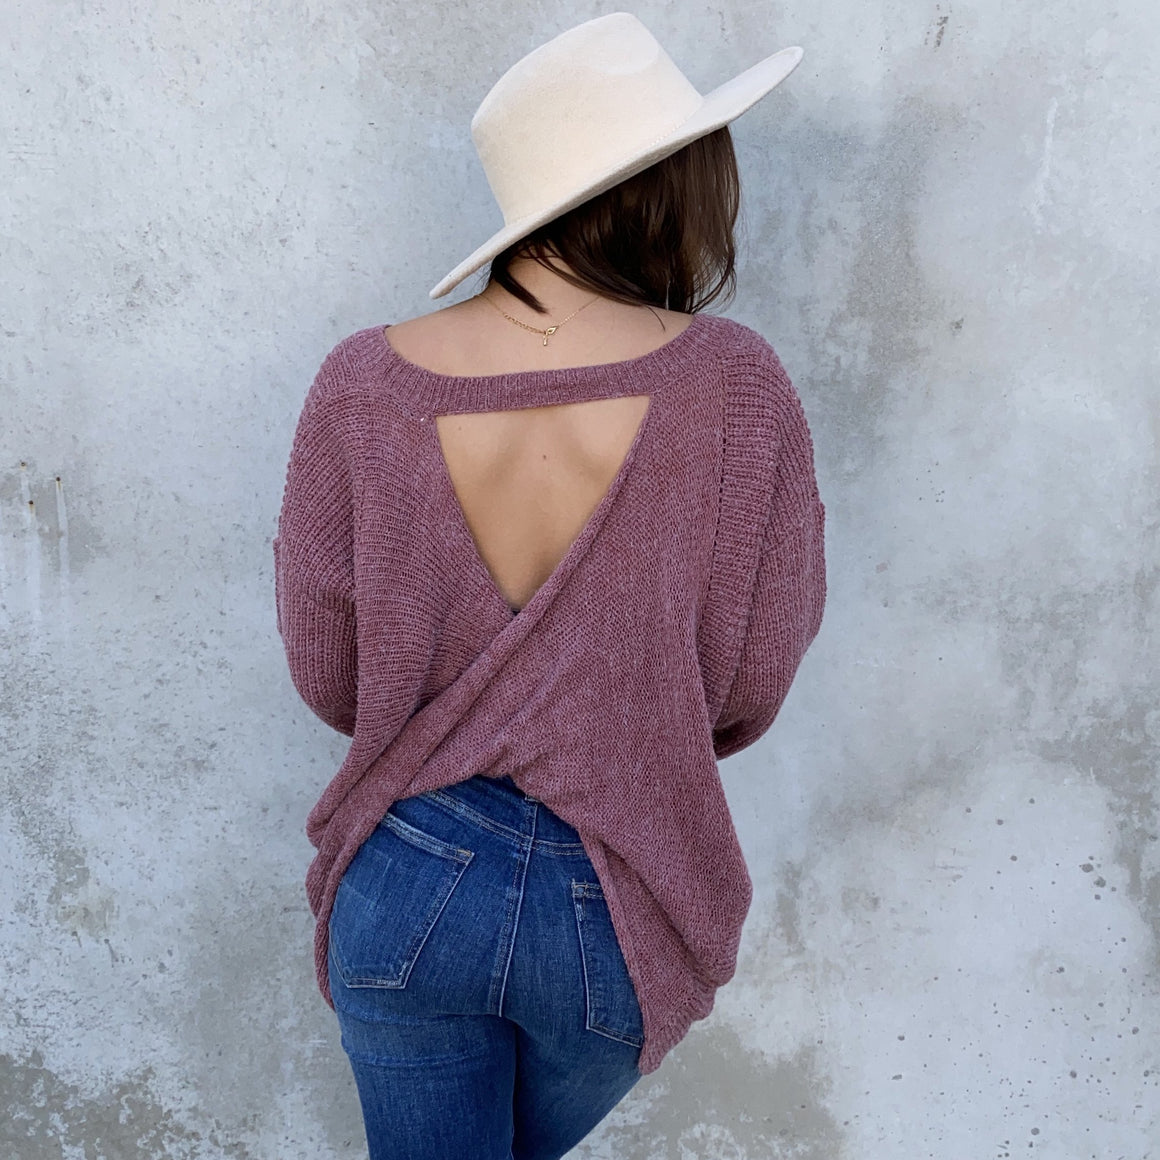 Give It A Twist Knit Sweater In Mauve Pink - Dainty Hooligan